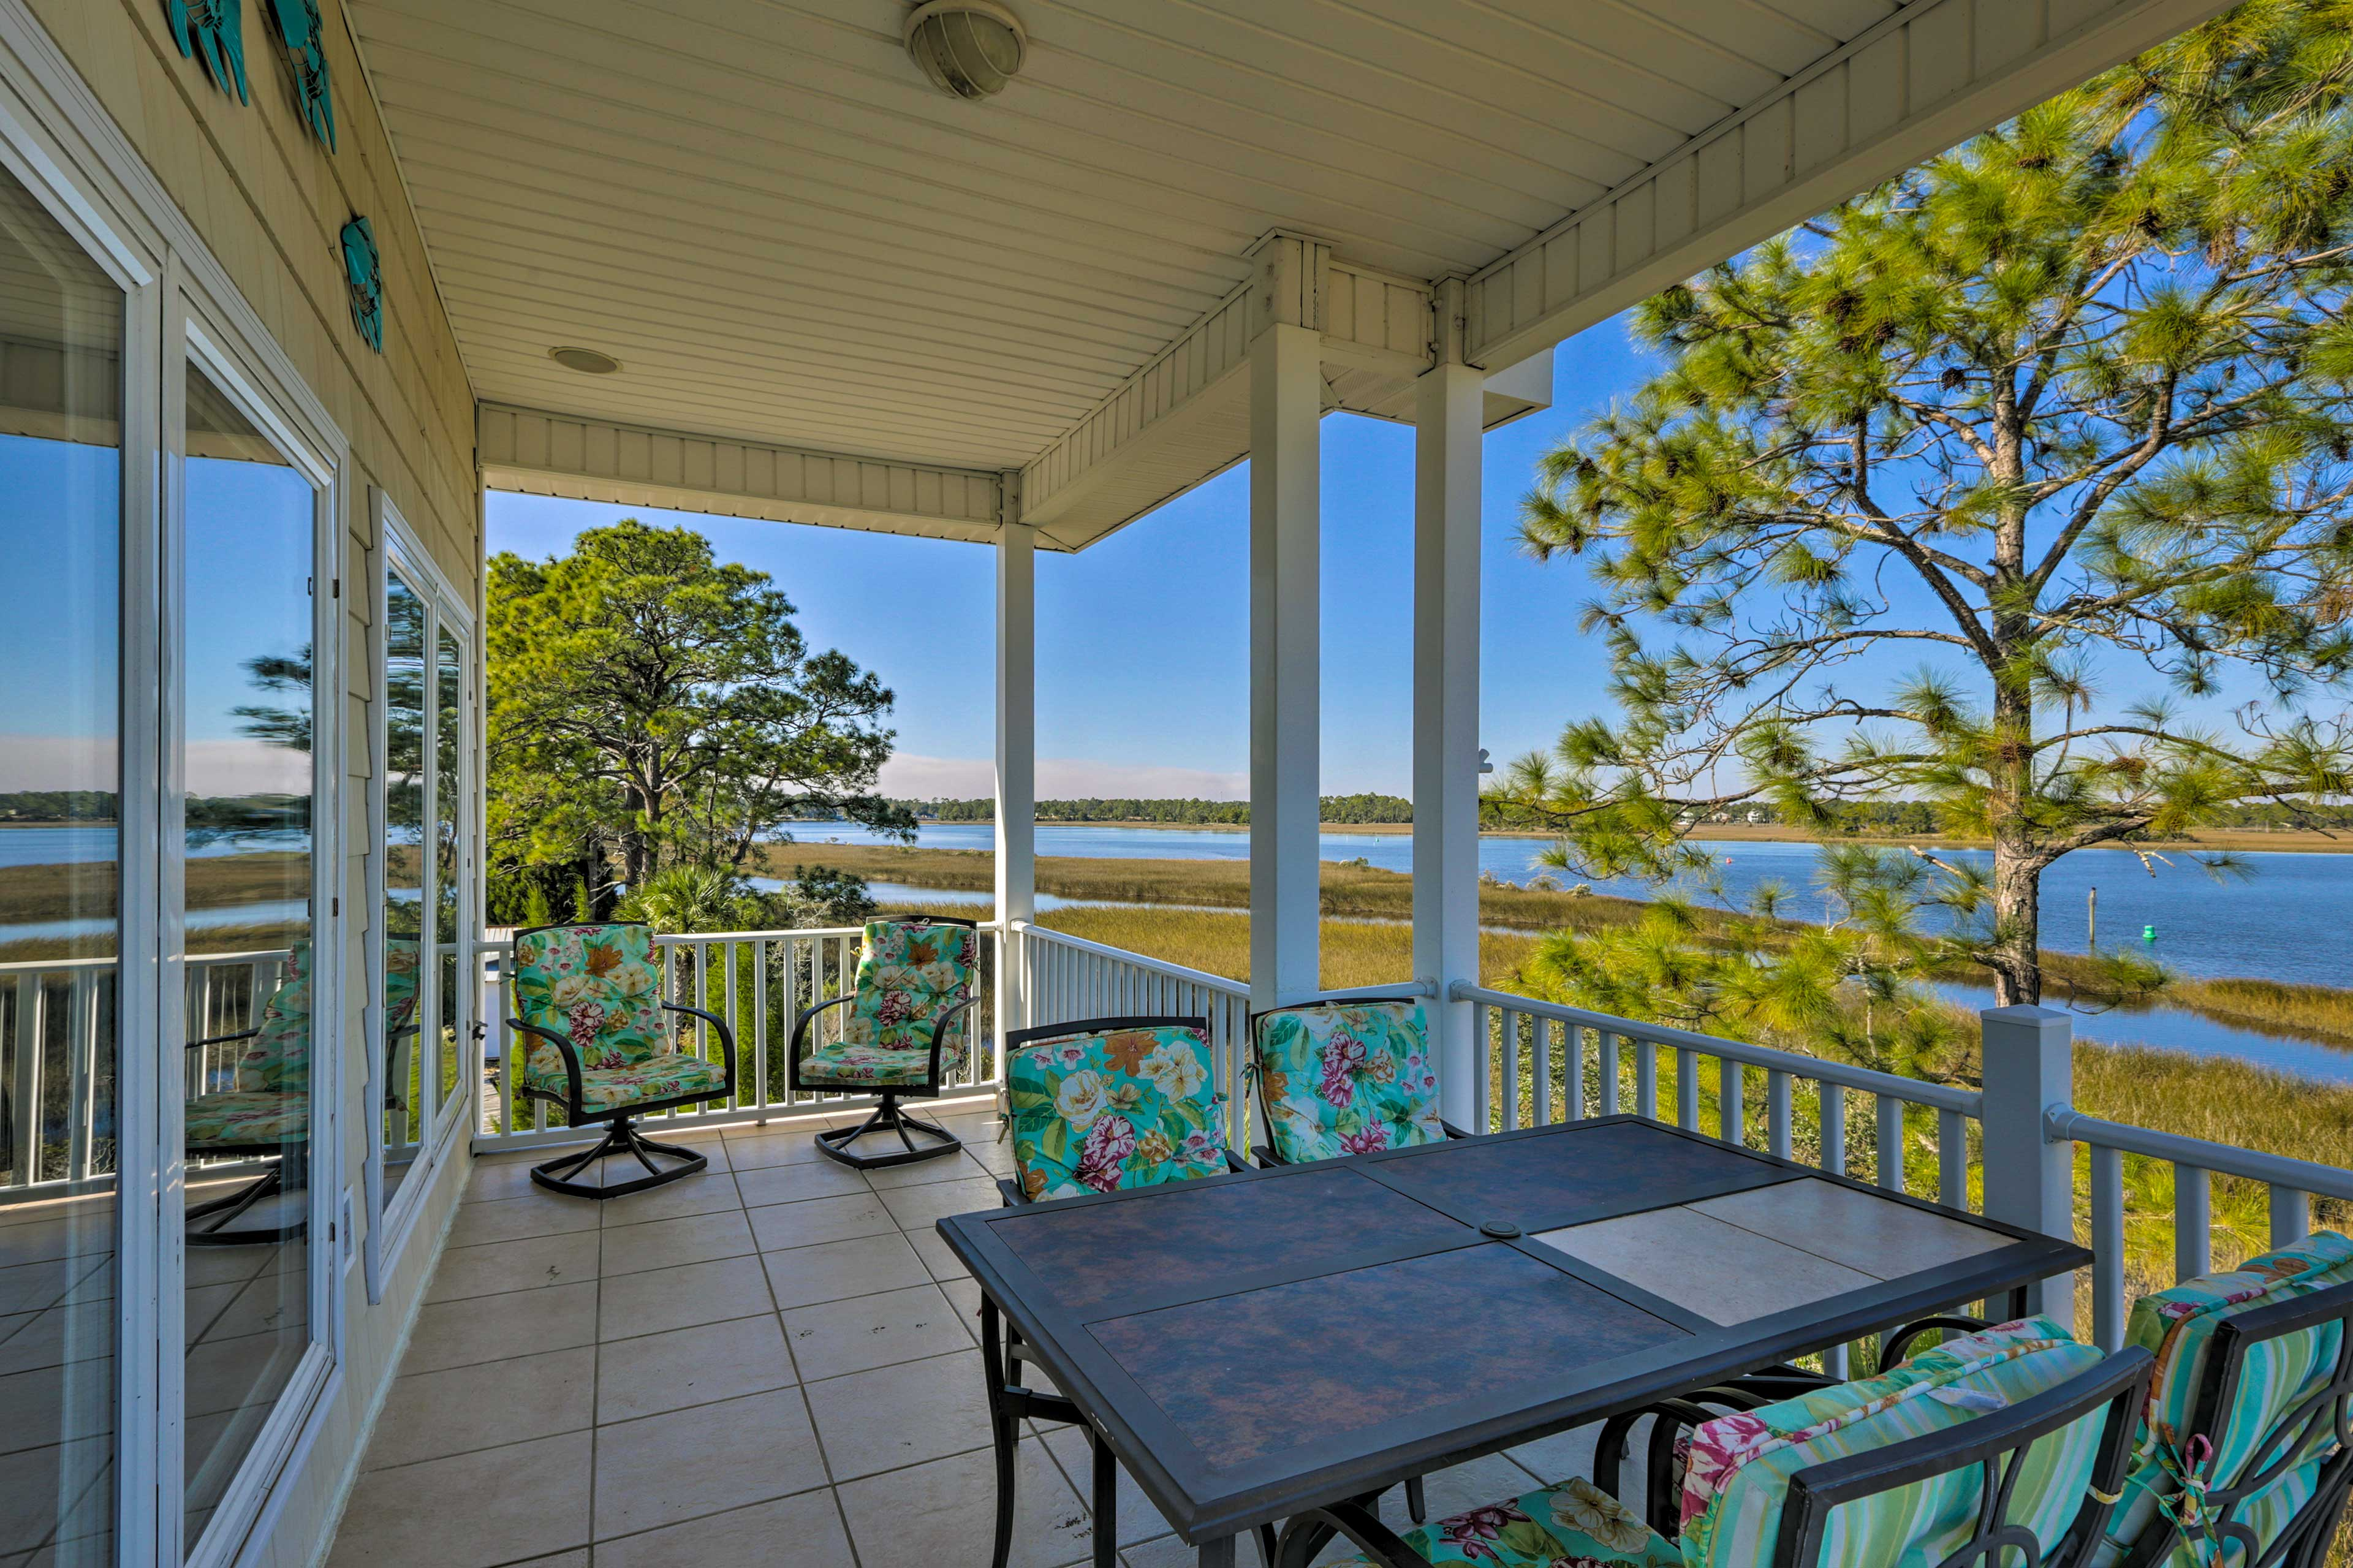 Experience the Sunshine State in luxury from this Carrabelle vacation rental house!